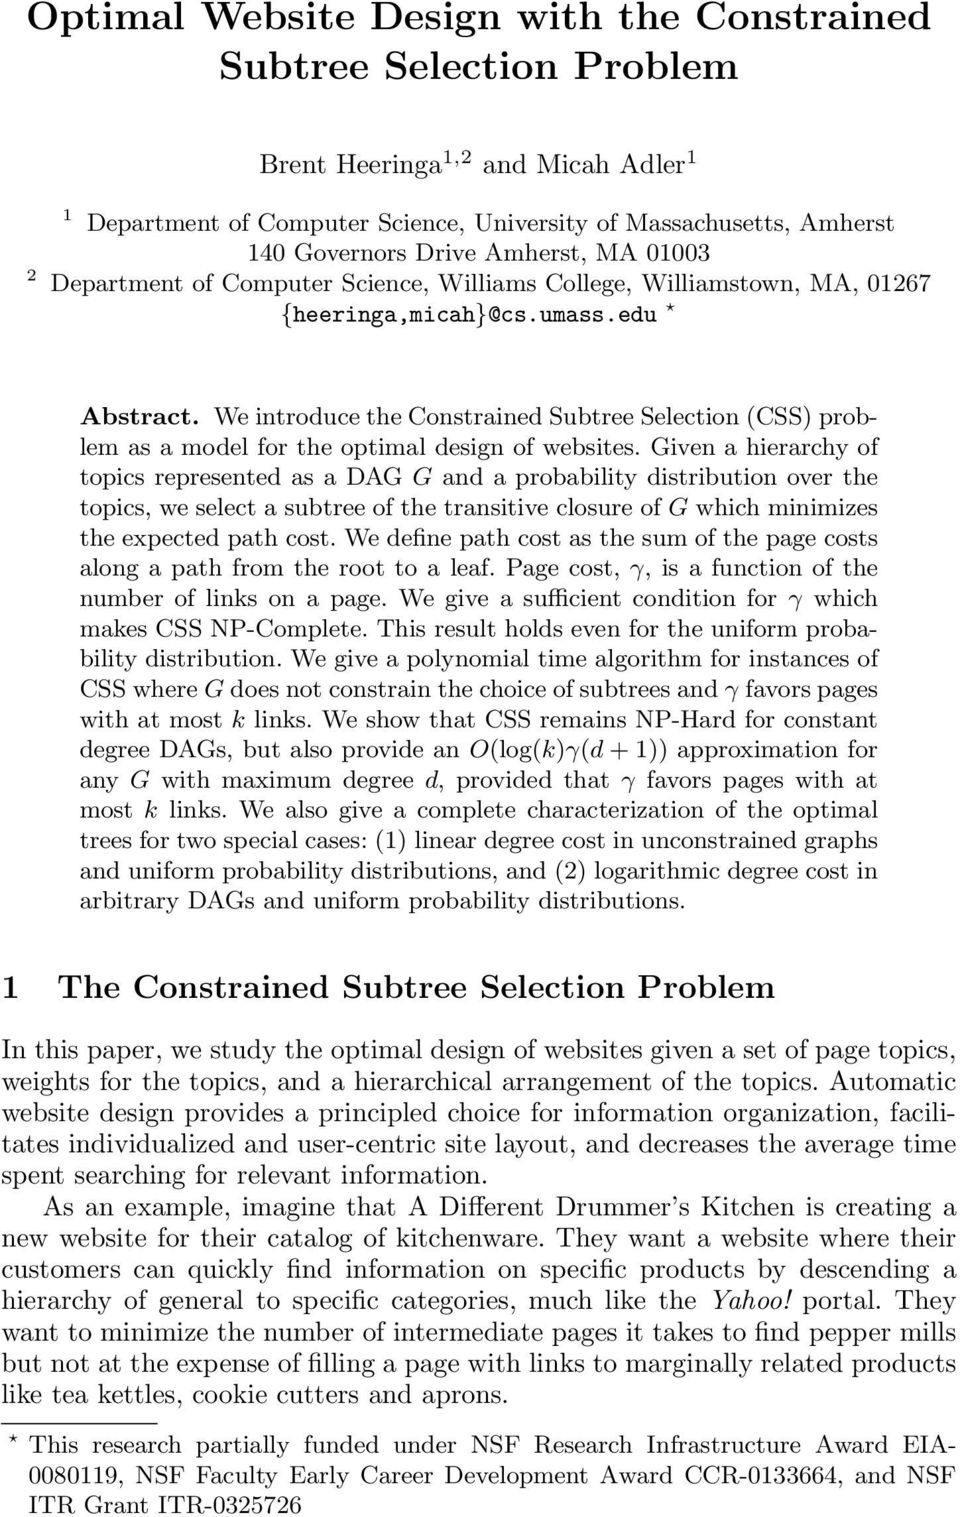 We introduce the Constrained Subtree Selection (CSS) problem as a model for the optimal design of websites.